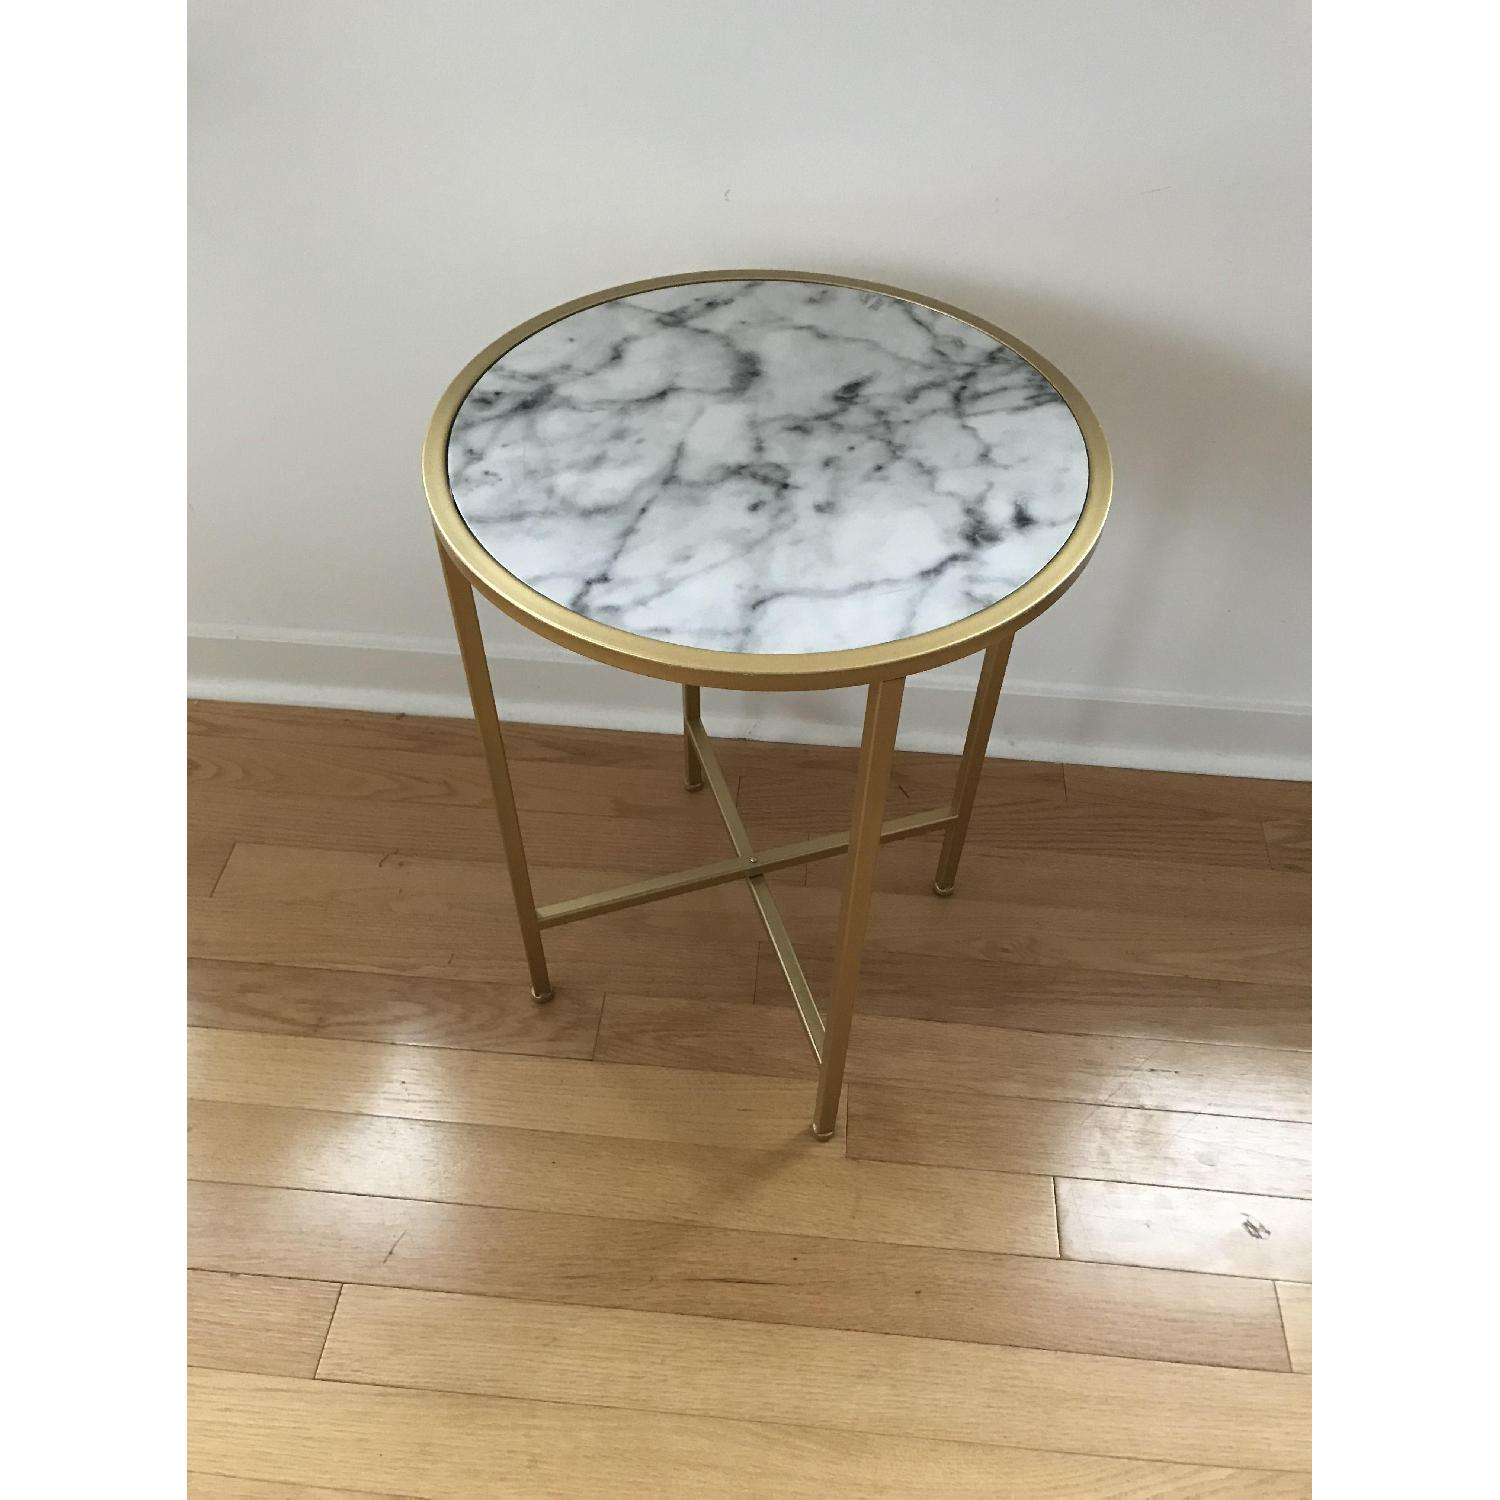 Johar Furniture Gold Coast Faux Marble Round End Tables-2